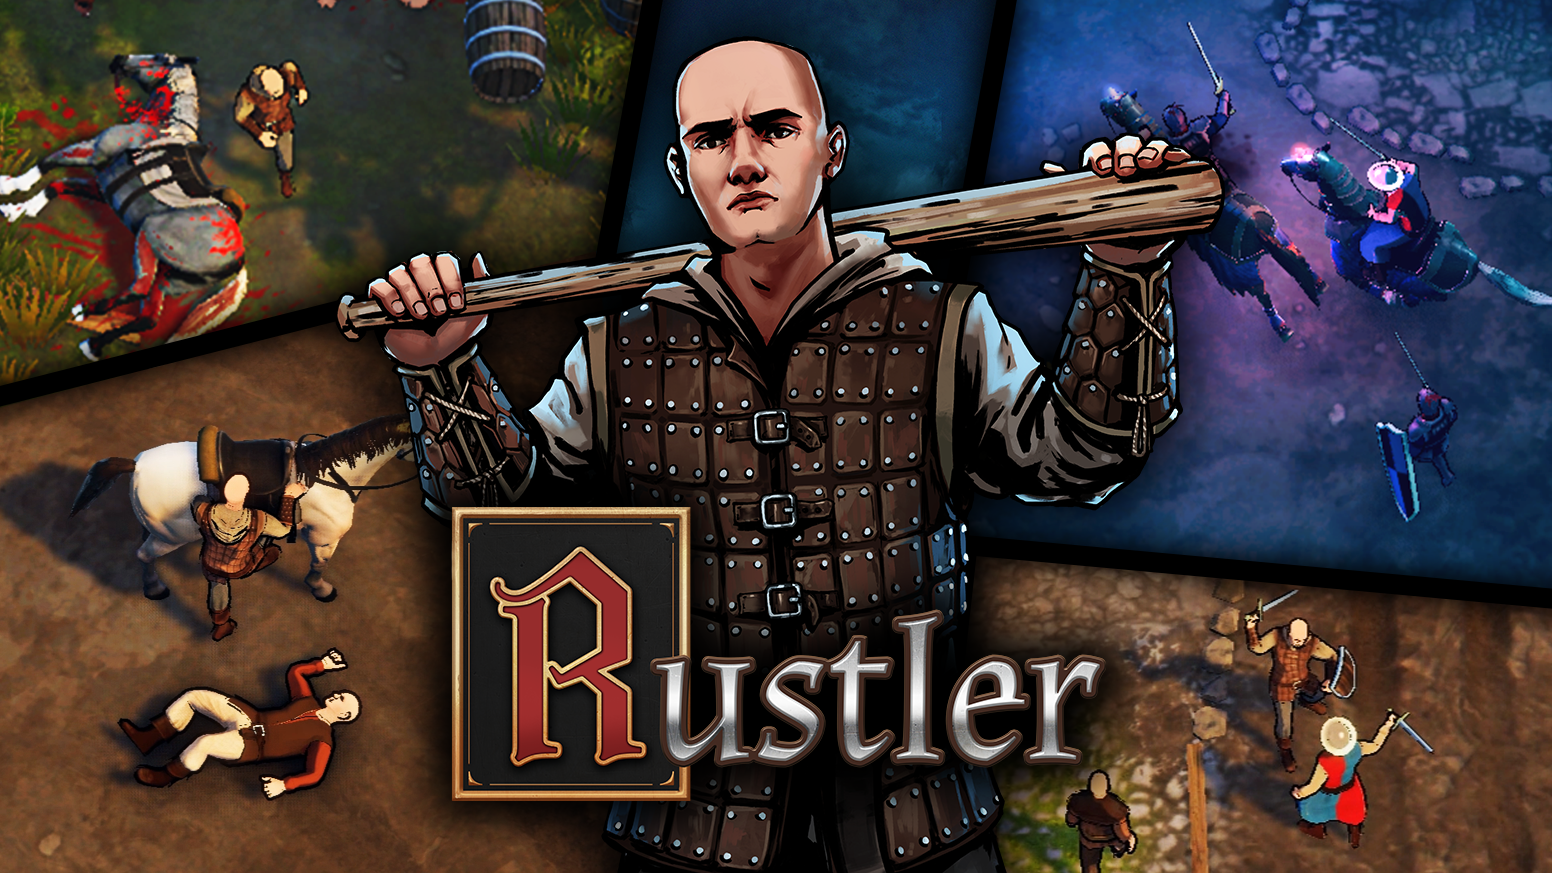 Become a medieval thug in a crazy open-world action game, full of pop-culture references. All packed in old-school gameplay style!